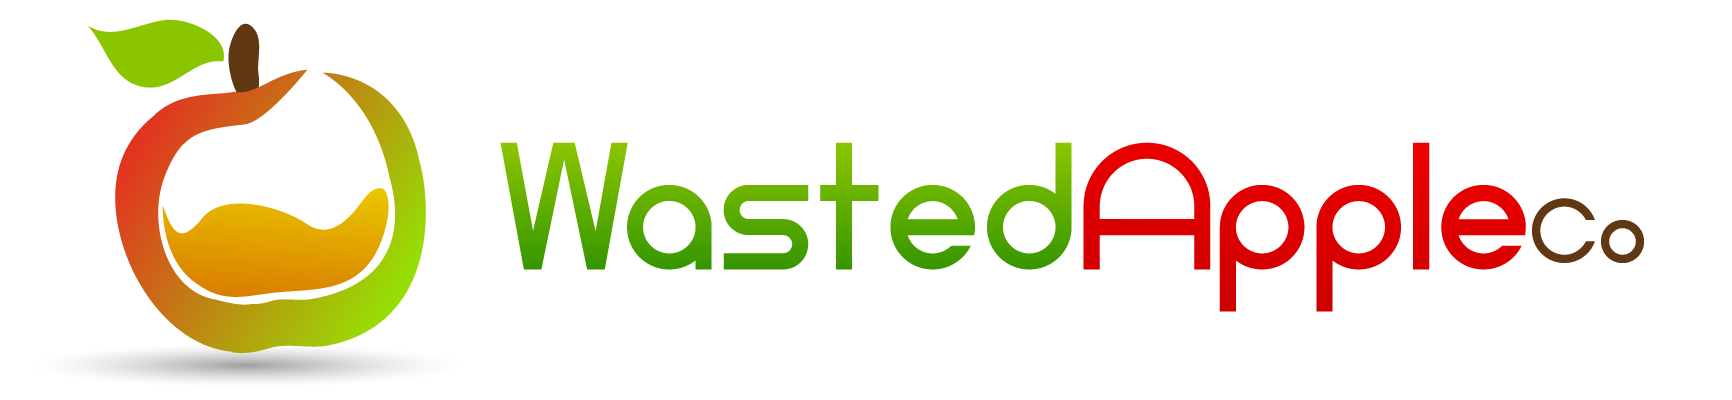 Wasted Apple